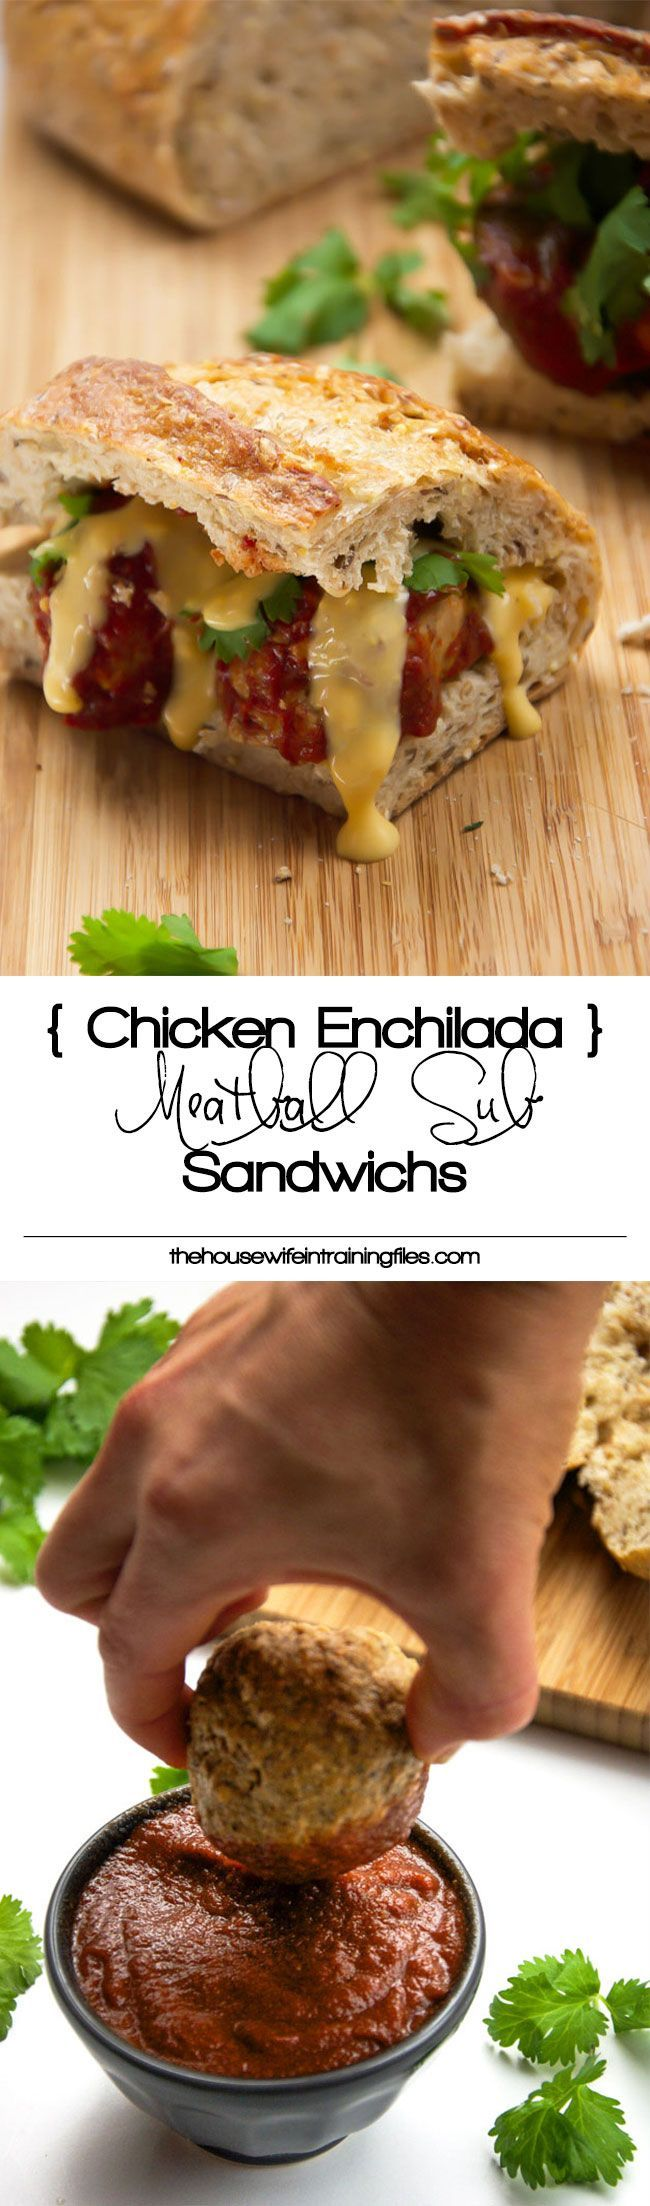 {Slow Cooker} Enchilada Chicken Meatball Sub Sandwiches madeover with lean, ground chicken, enchilada sauce, multigrain rolls and dipped into a skinny queso dip!